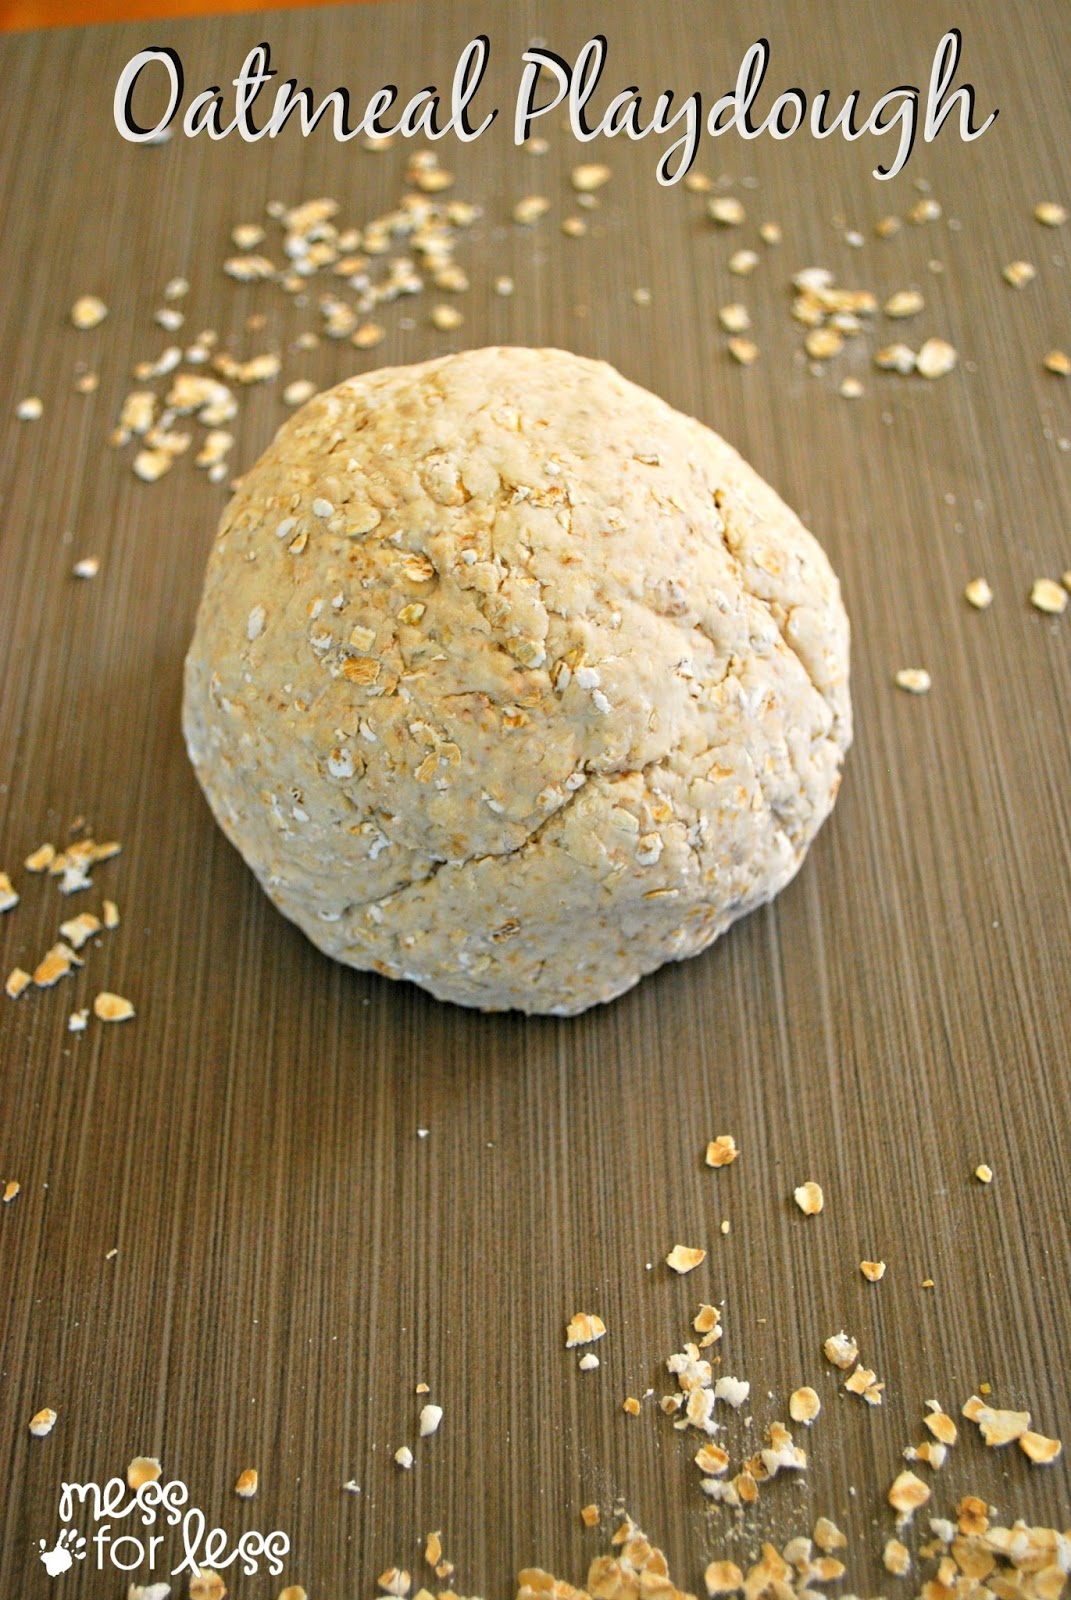 http://www.messforless.net/2014/04/oatmeal-playdough-recipe.html